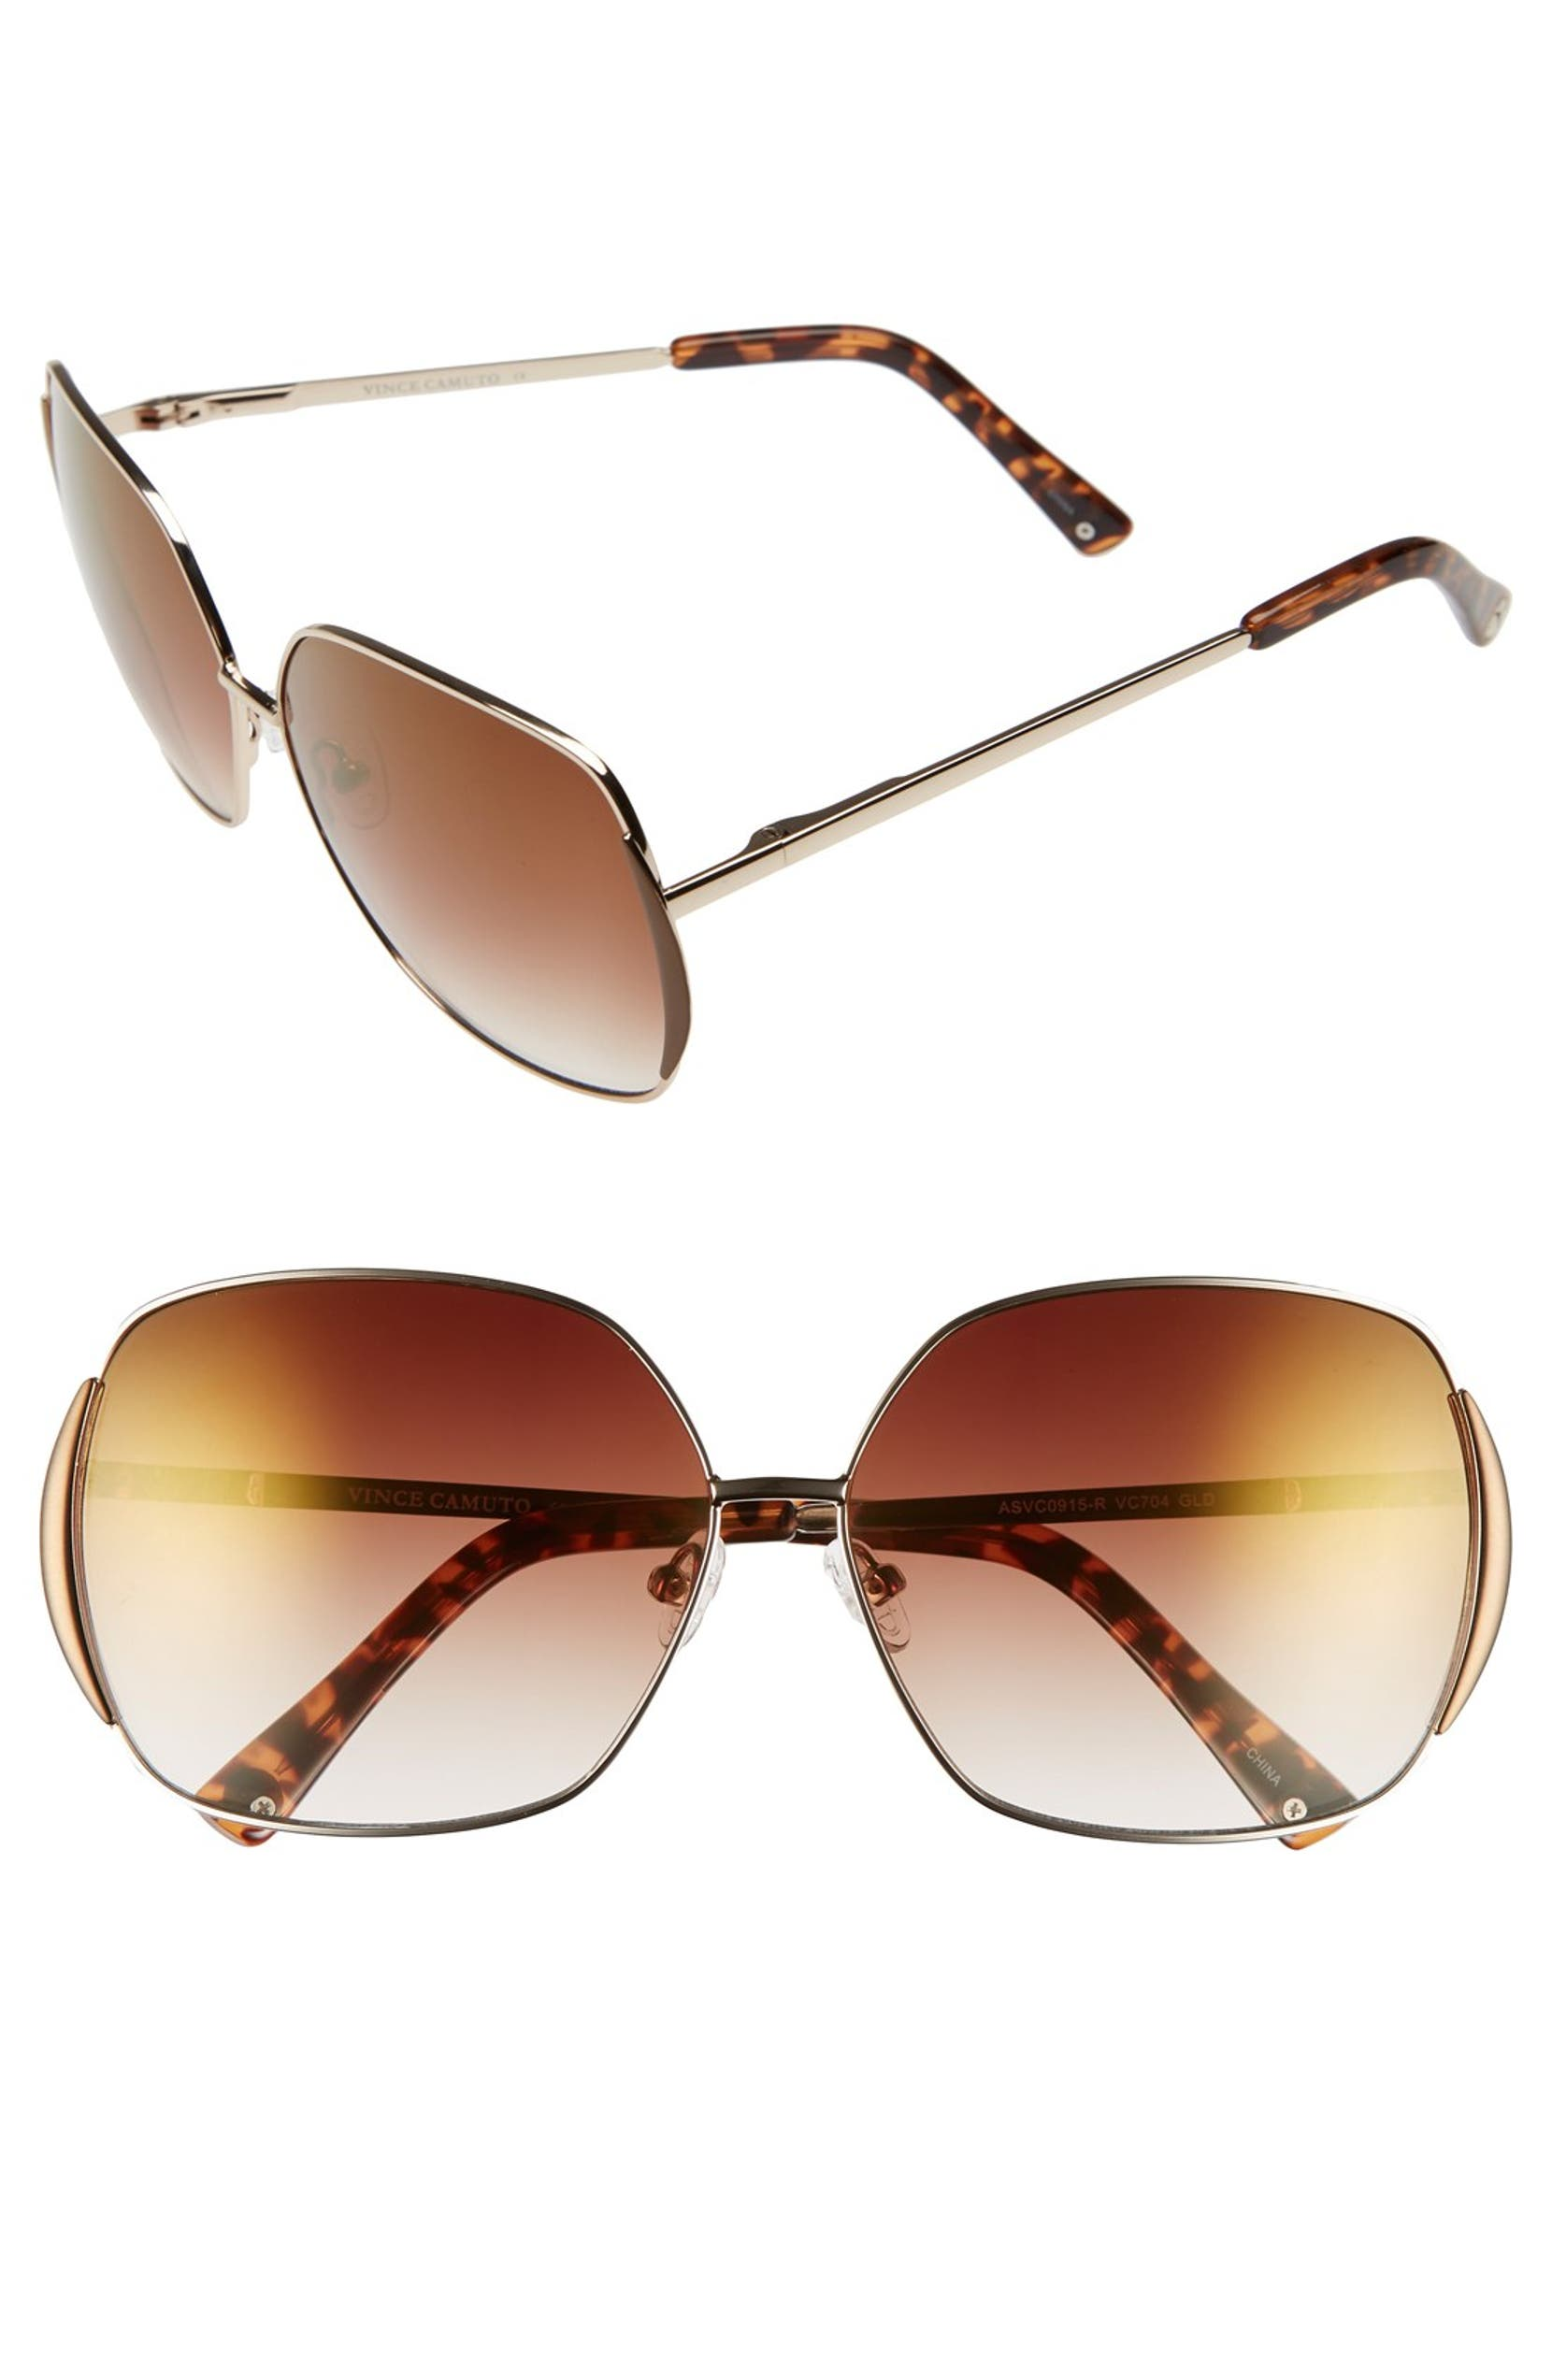 2ddb7a8b1a Vince Camuto Square 62mm Sunglasses